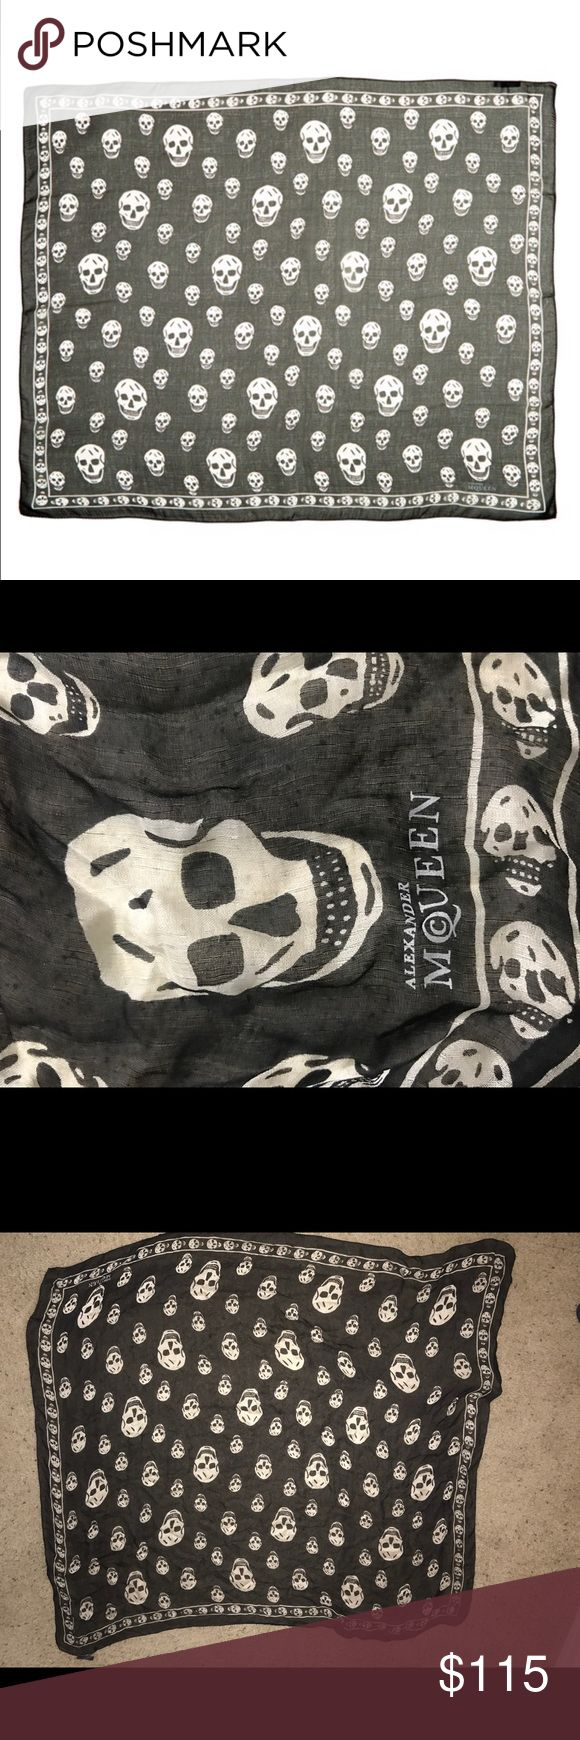 ALEXANDER MCQUEEN SILK SKULL SCARF In perfect condition, worn only a couple times. Signature Alexander McQueen skulls, black and white MADE IN ITALY Alexander McQueen Accessories Scarves & Wraps